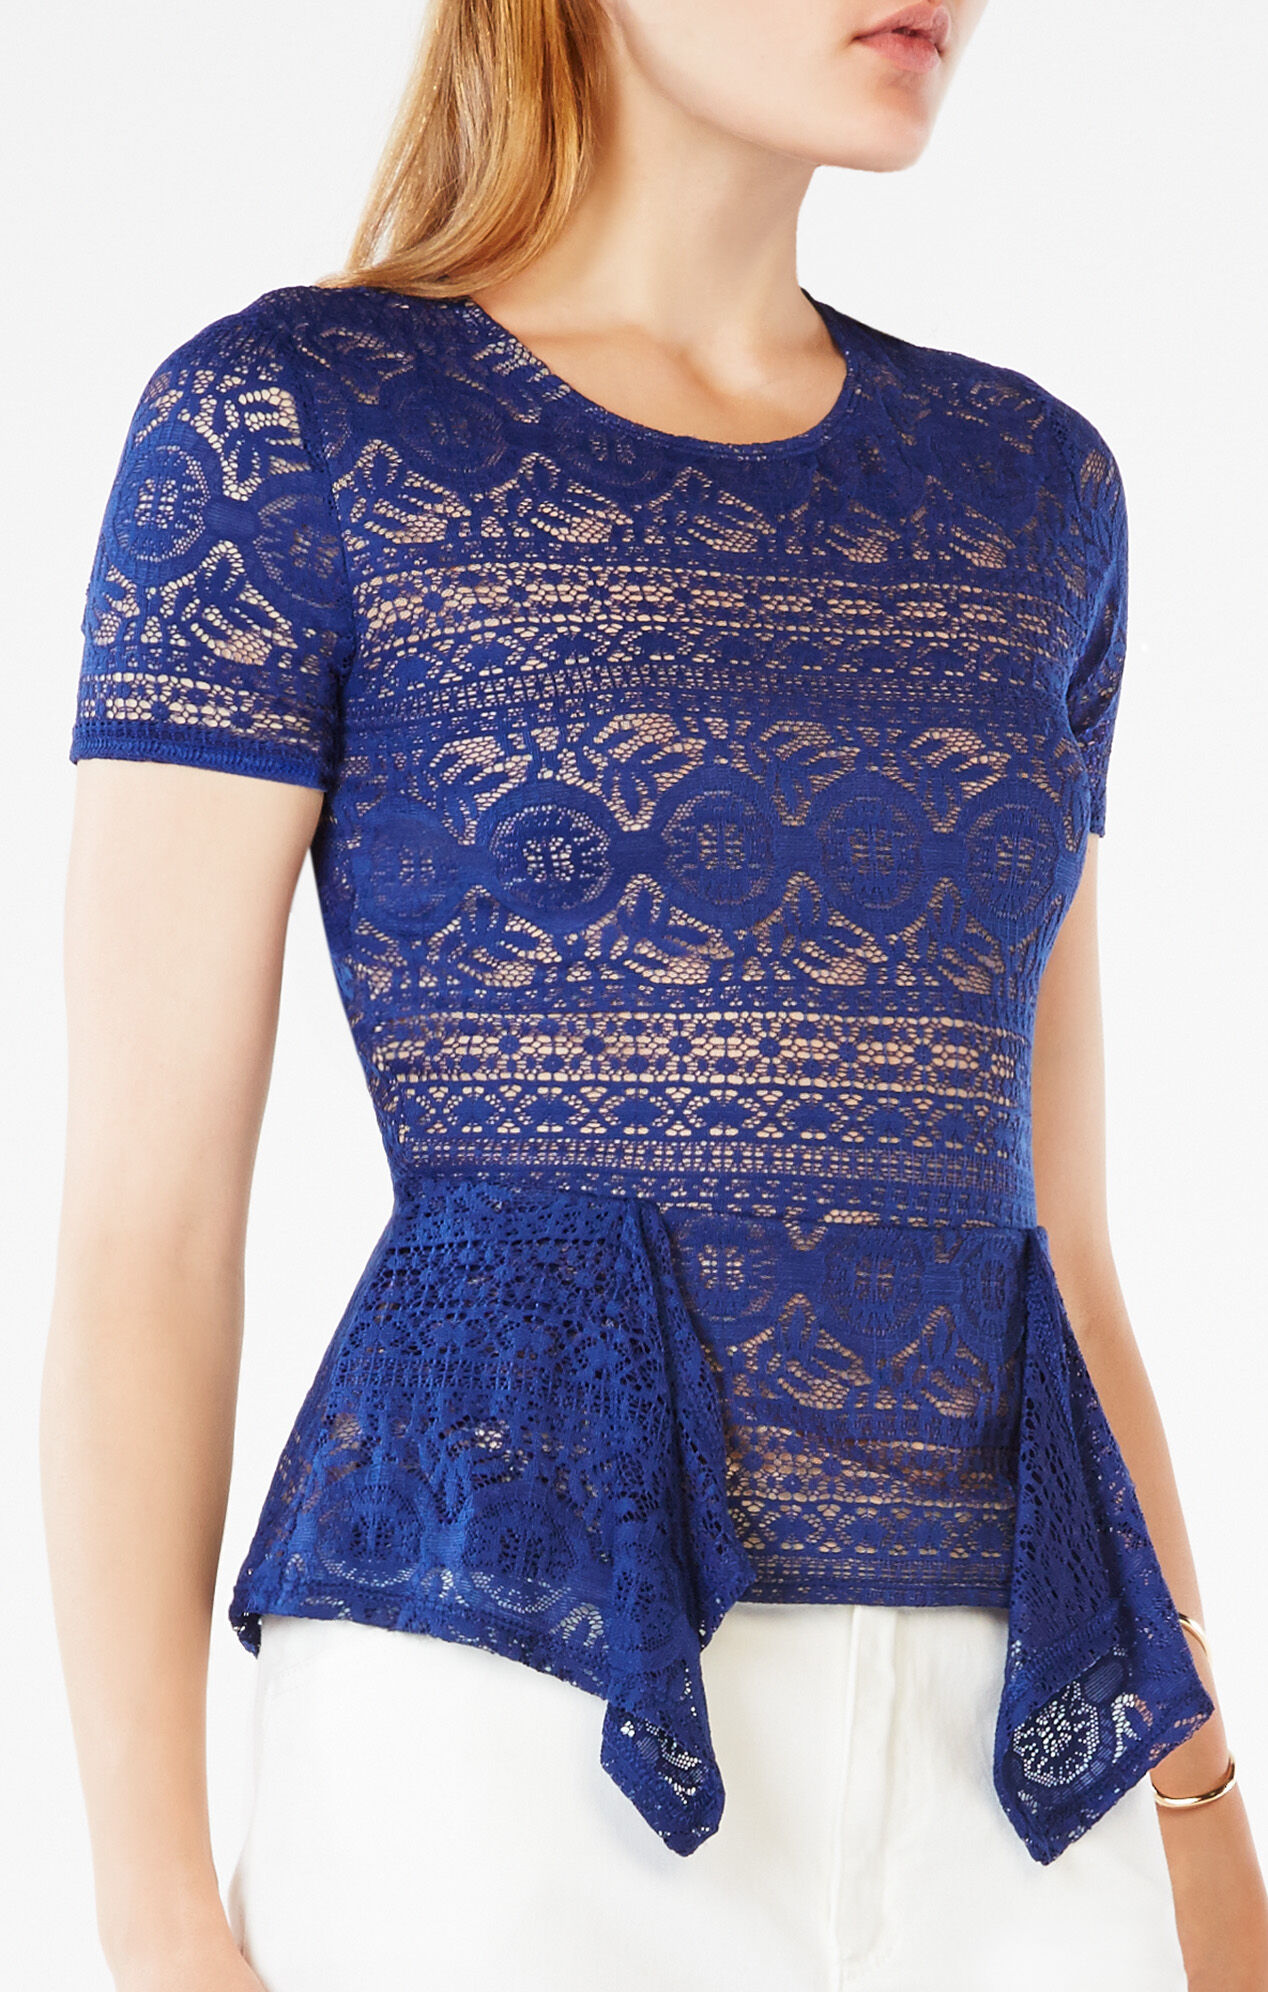 Shop for womens peplum tops online at Target. Free shipping on purchases over $35 and save 5% every day with your Target REDcard.